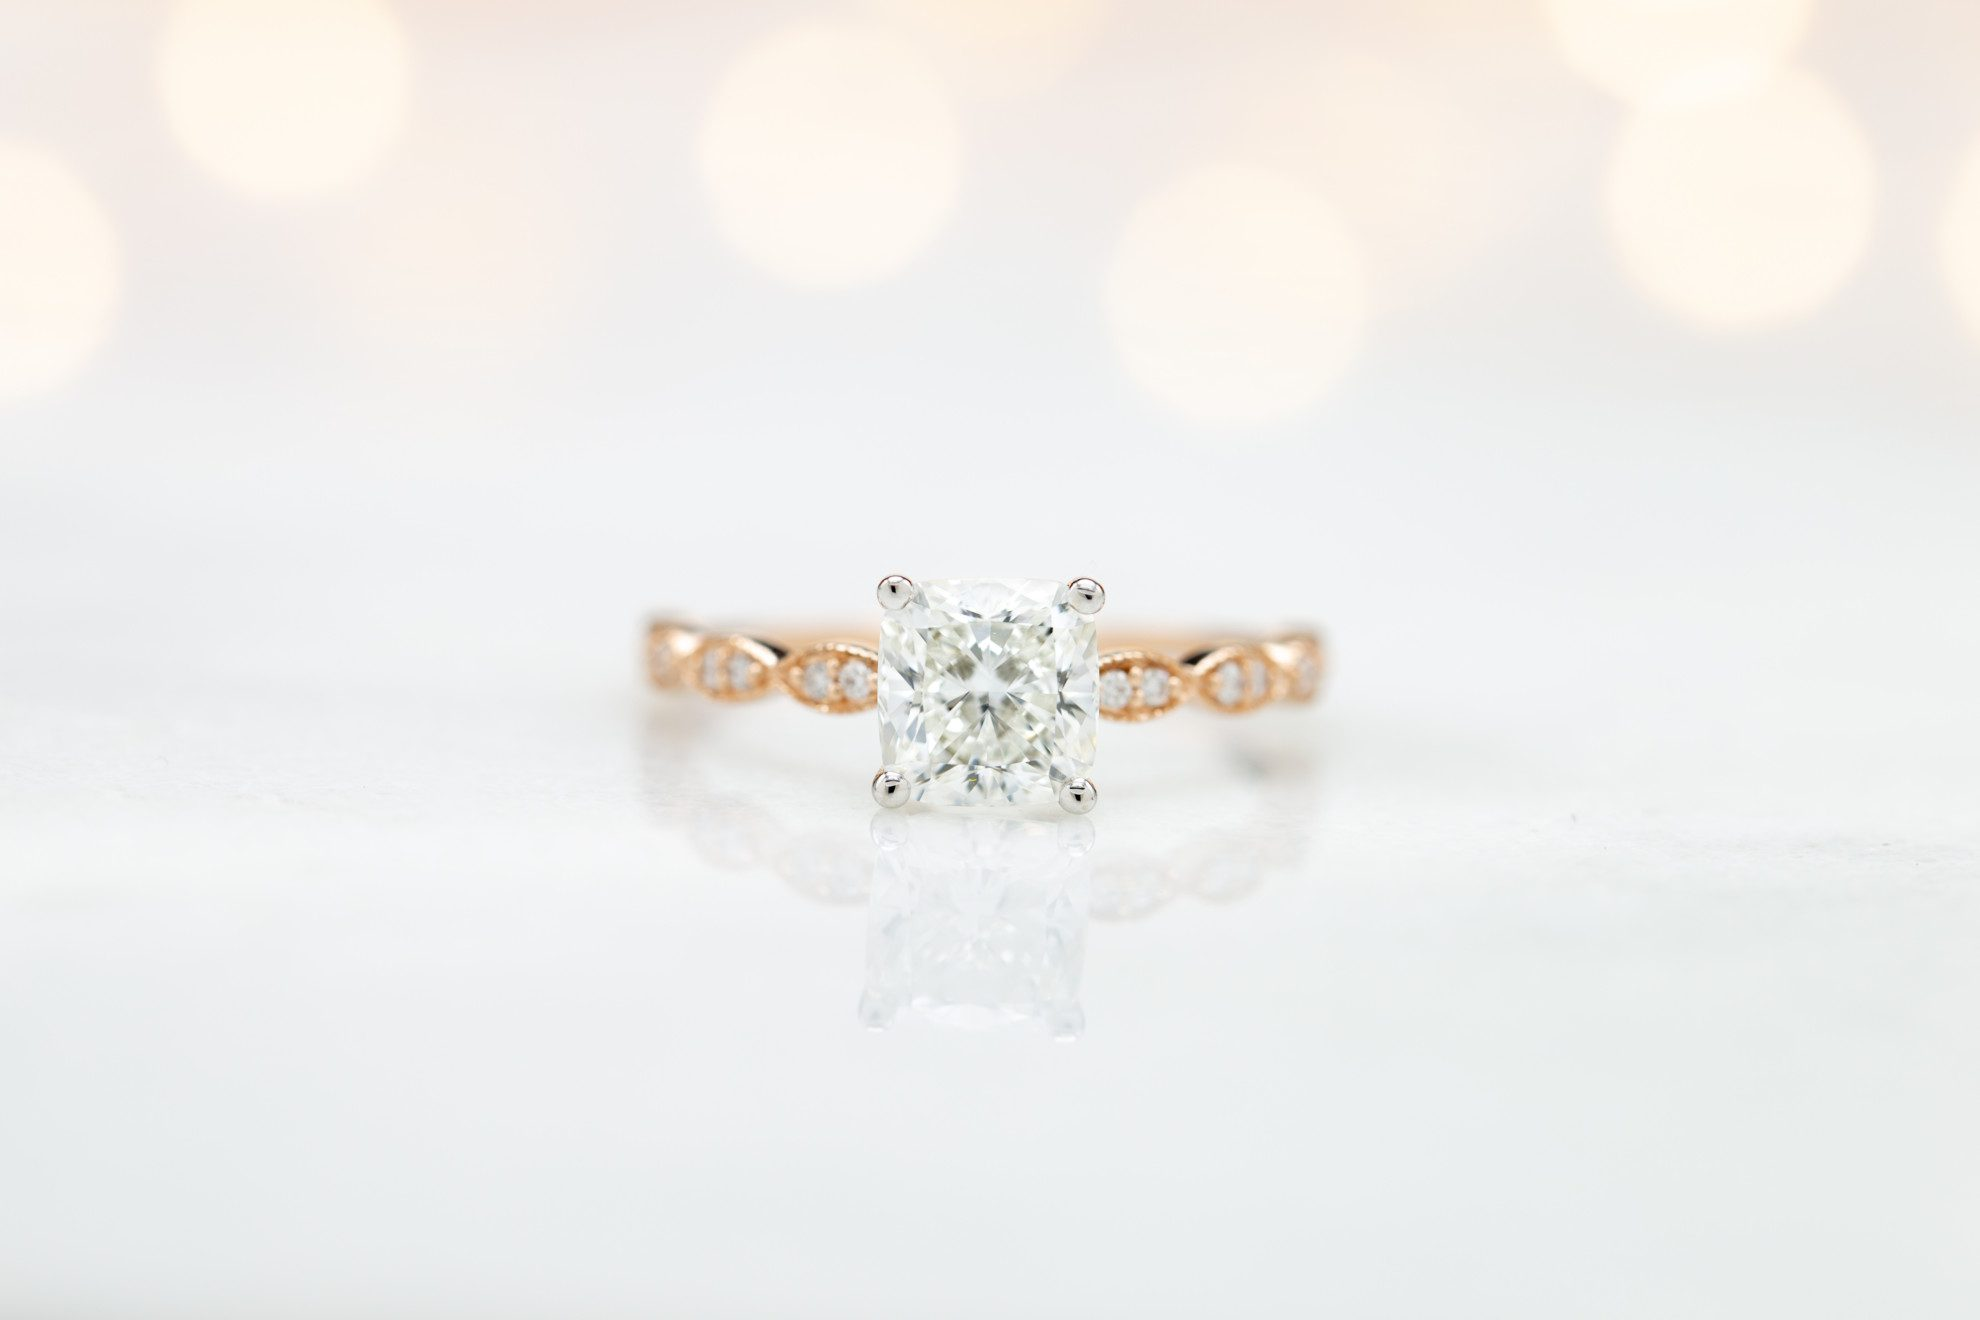 cushion-cut diamonds - solitaire engagement ring in white and rose gold